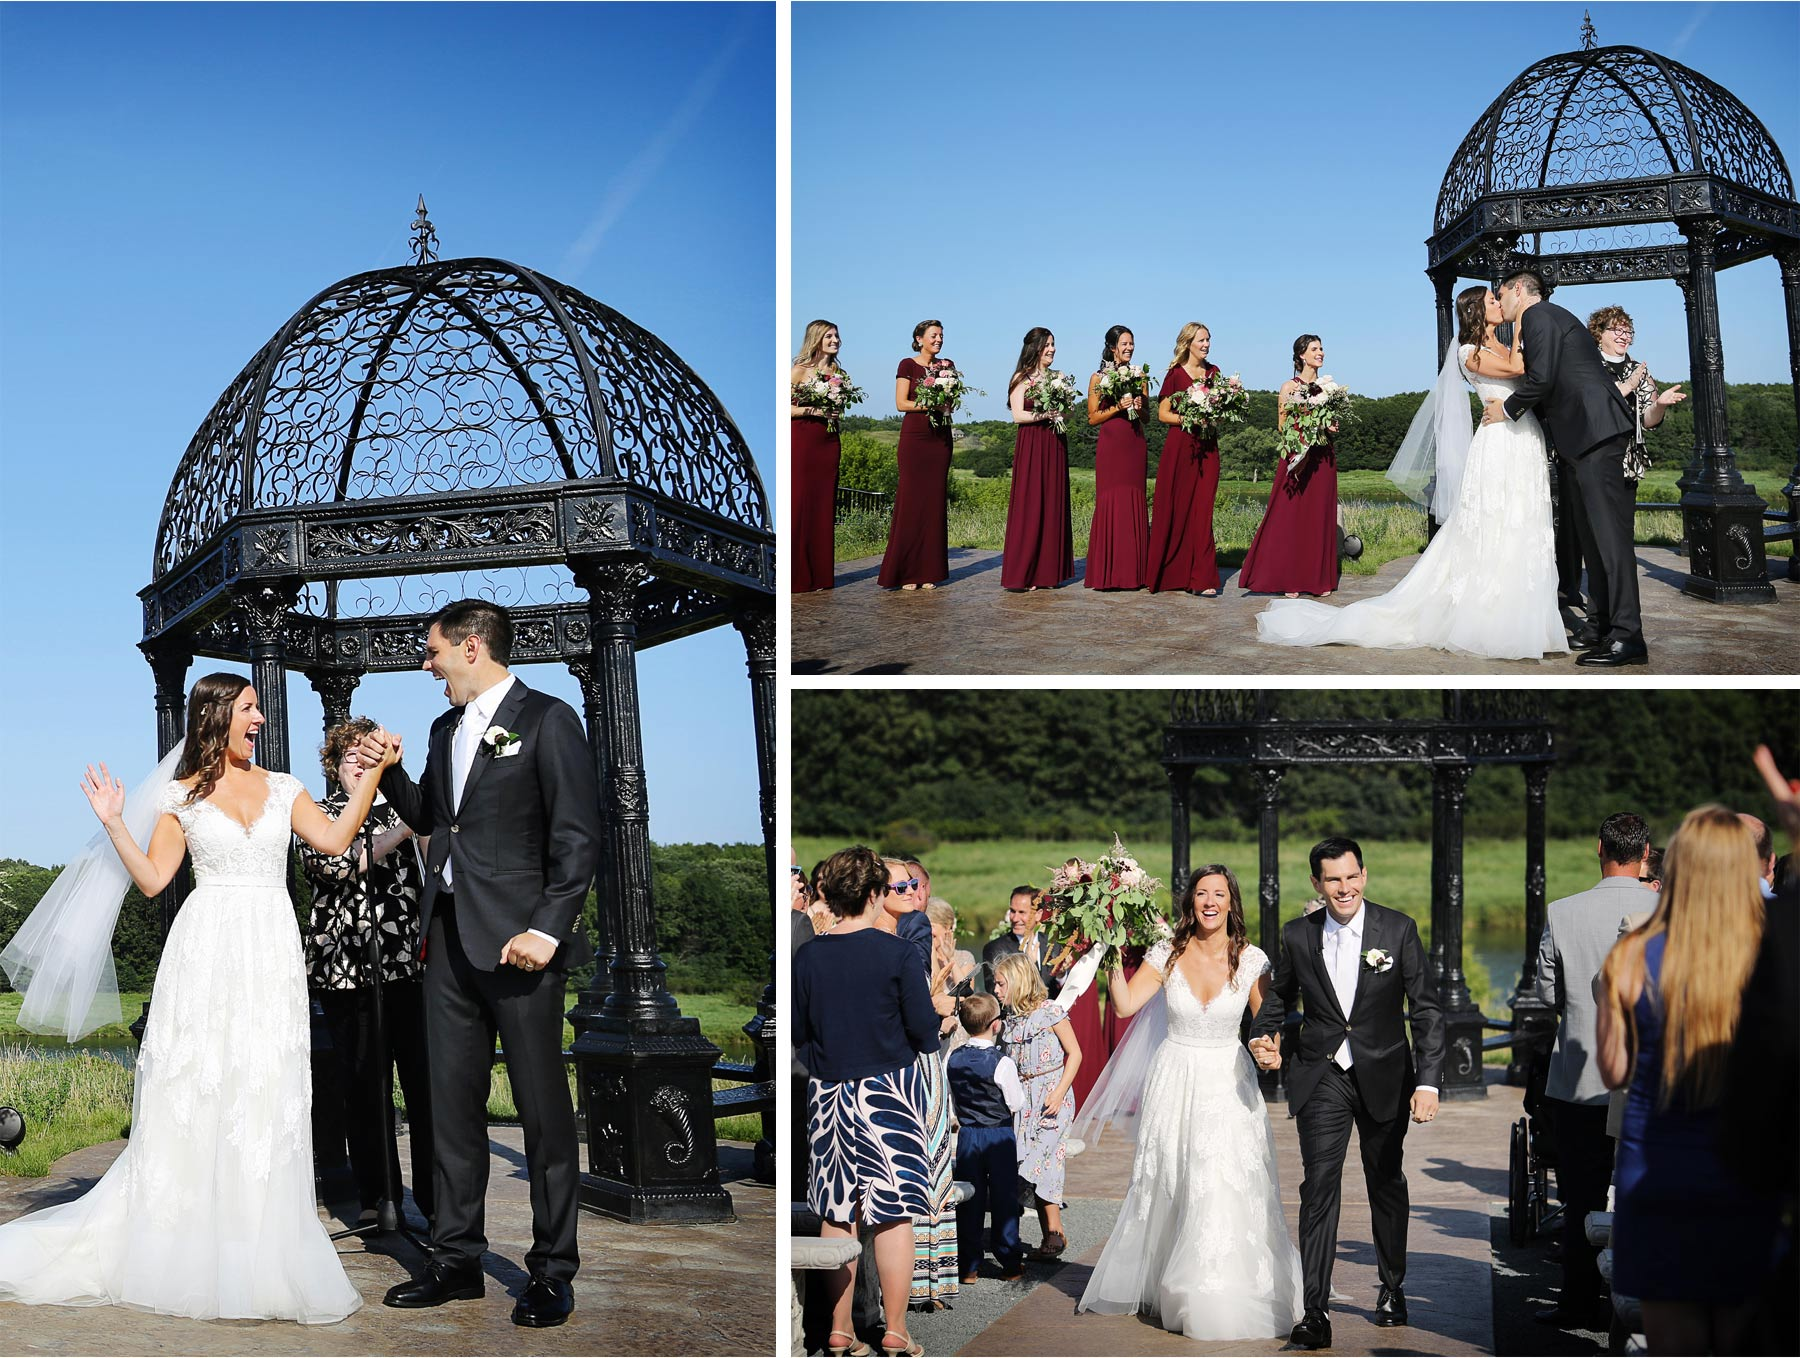 14-Weding-by-Vick-Photography-Minneapolis-Minnesota-Bavaria-Downs-Outdoor-Summer-Ceremony-Kiss-Bride-Groom-Rebecca-and-Mark.jpg